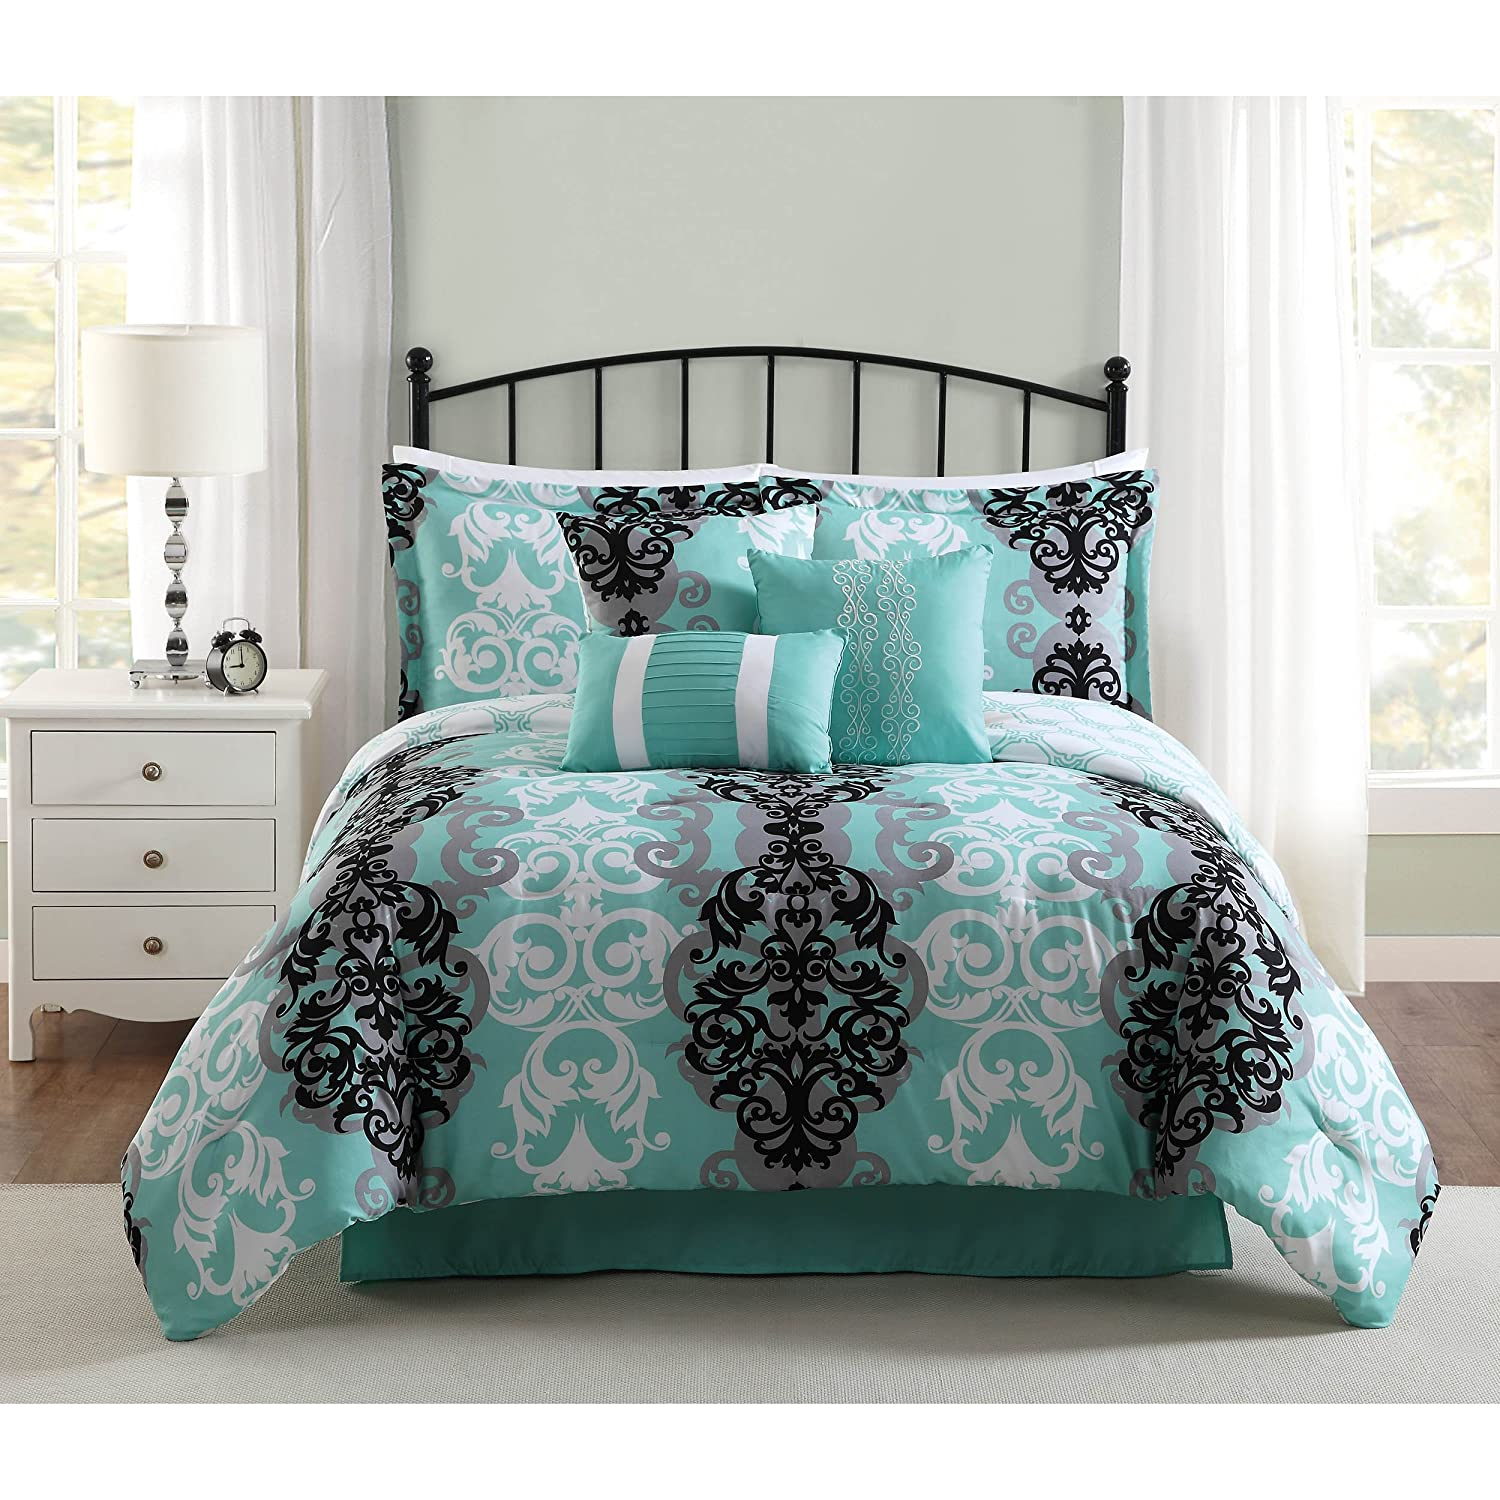 s bed teal workshop and white sets nana bedding grey gray square wooden nightstand black